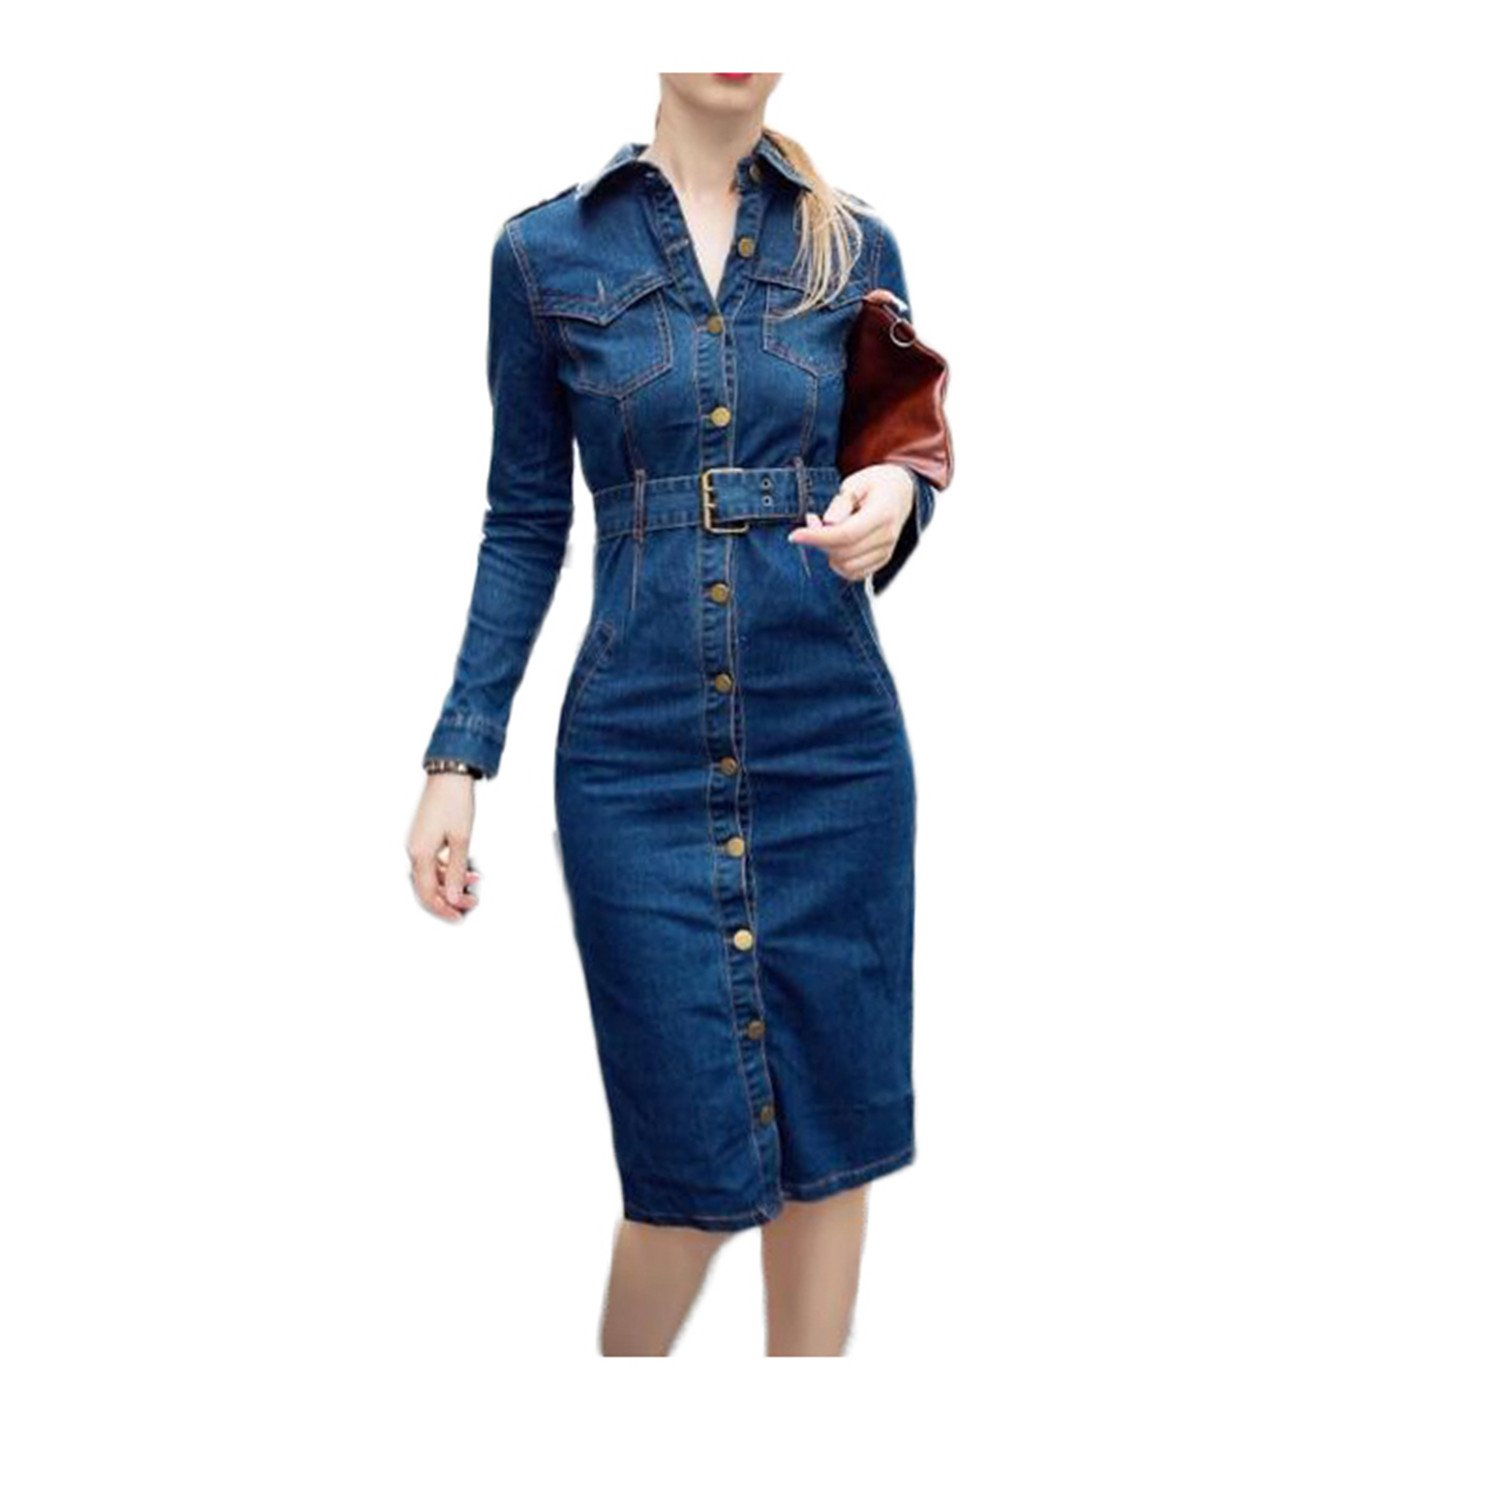 Amazon.com: Stevenurr Popular,Hot Sell Summer Tunic Shirt Dress Women Denim Vintage Long Sleeve Jeans Dresses Party Sexy Plus Size Dress Blue XXL Beautiful: ...